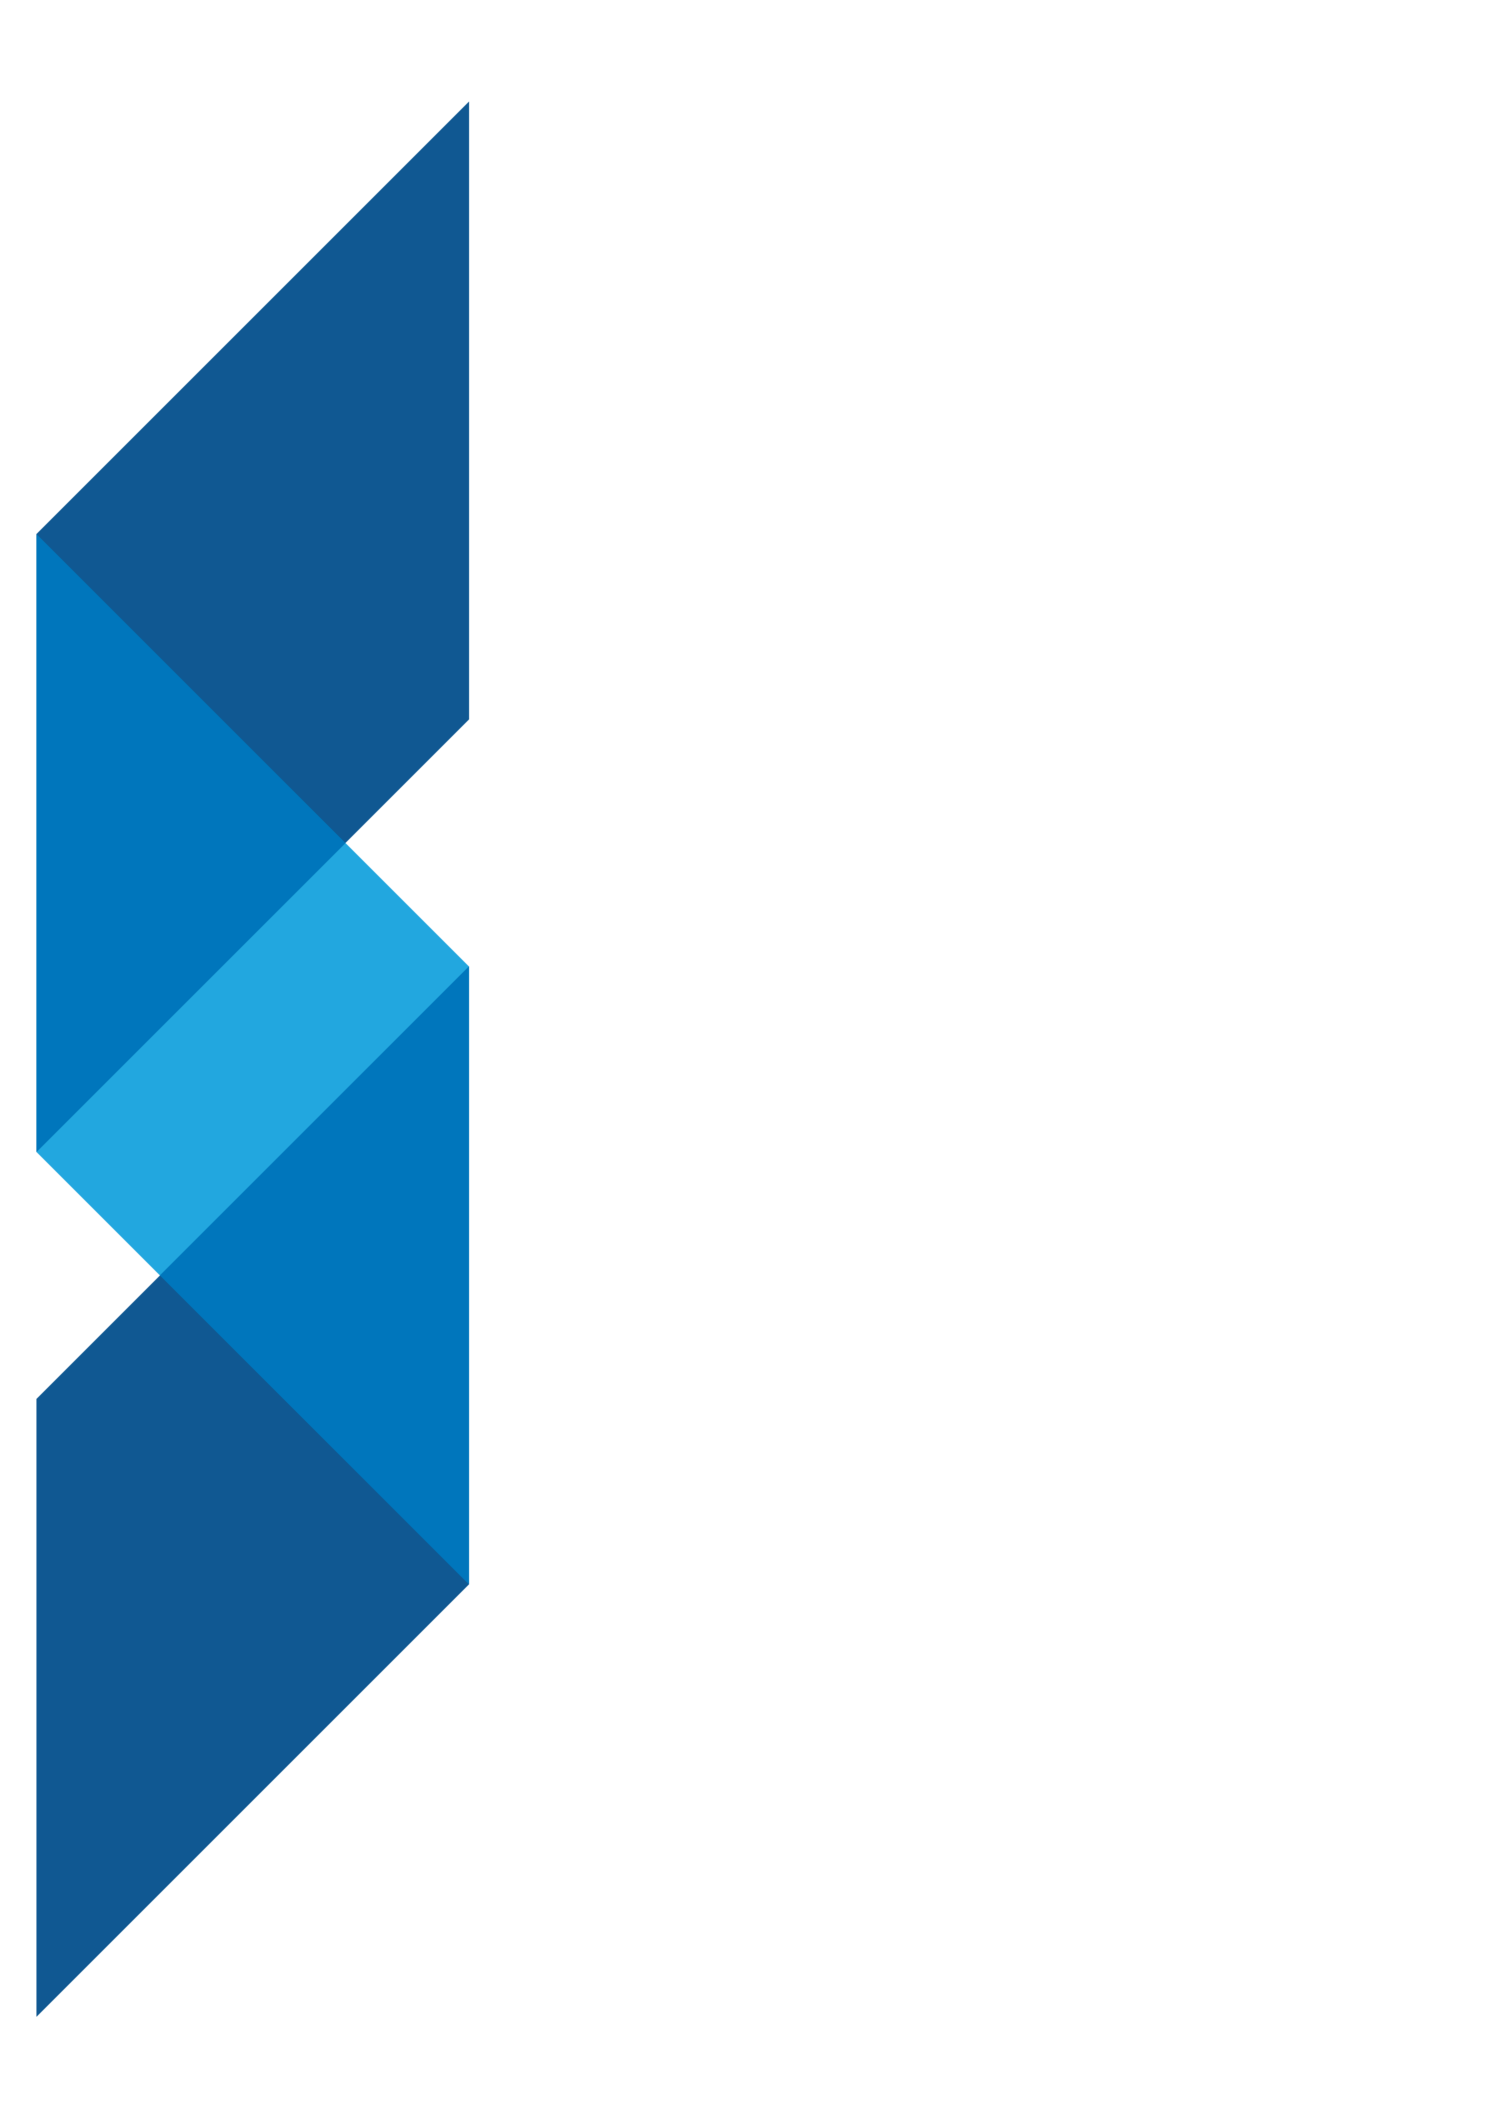 Sanderson Cleaning Services